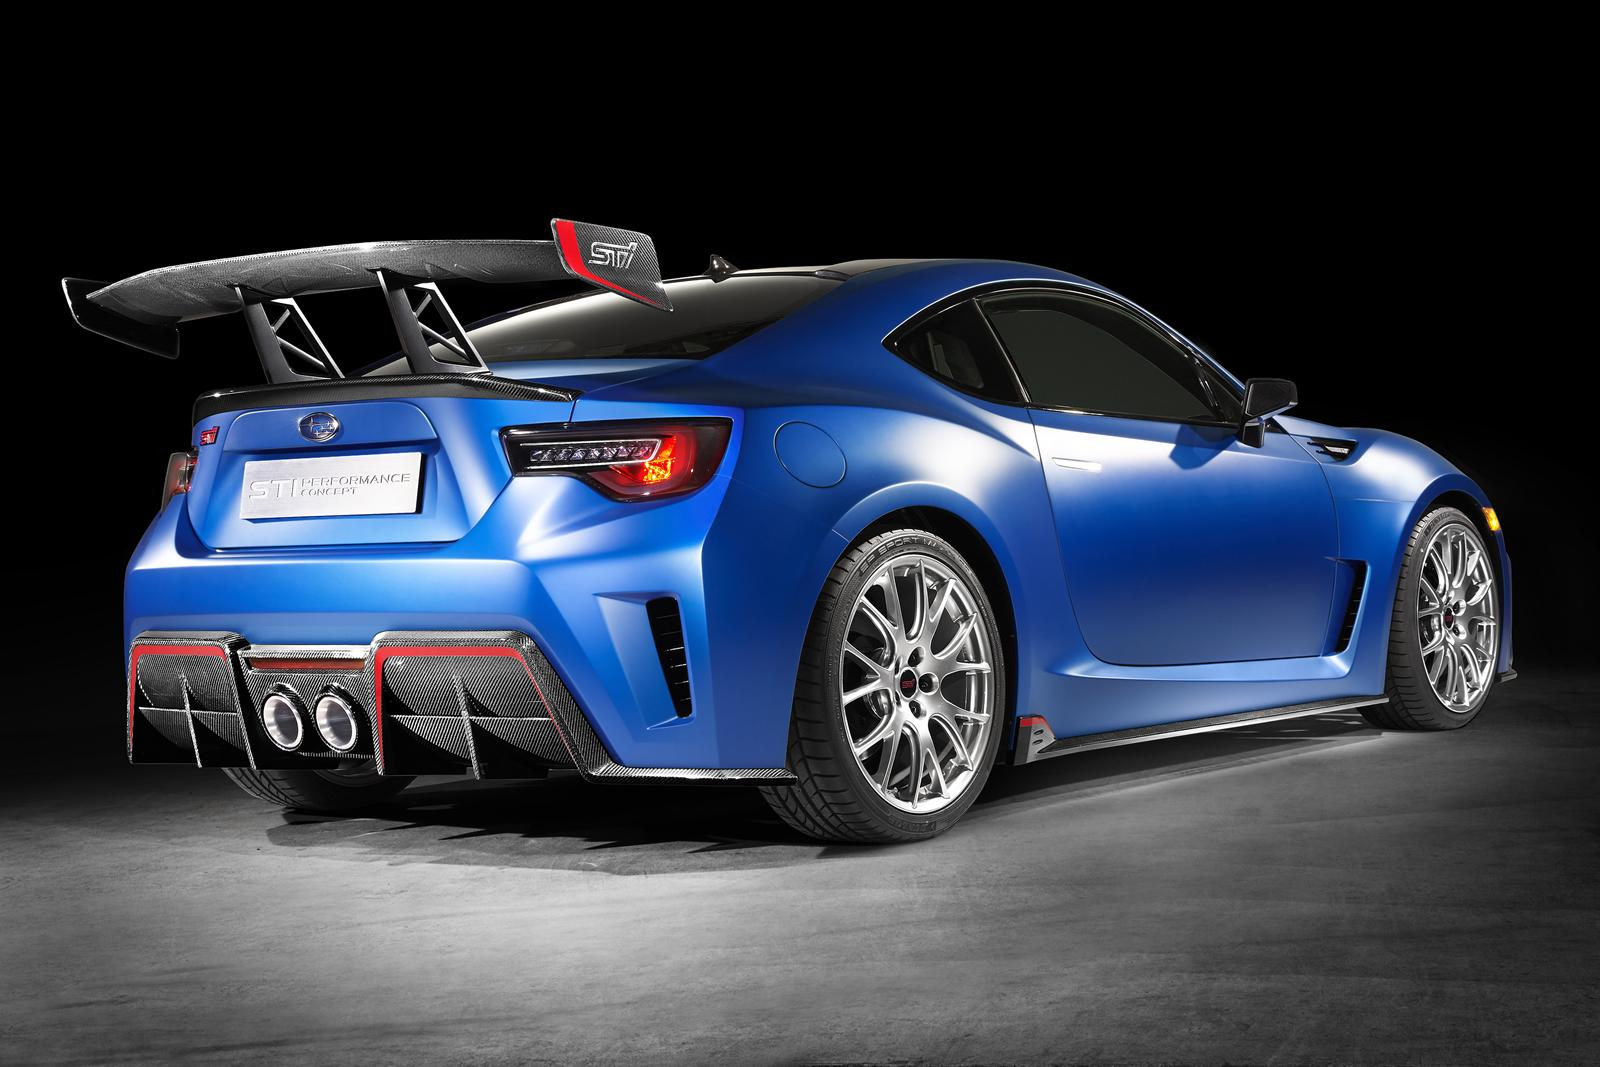 Although The Prospect Of A Properly Ful Brz Is Tantalizing Subaru Hasn T Dropped Any Hints About Producing Car For M Consumption